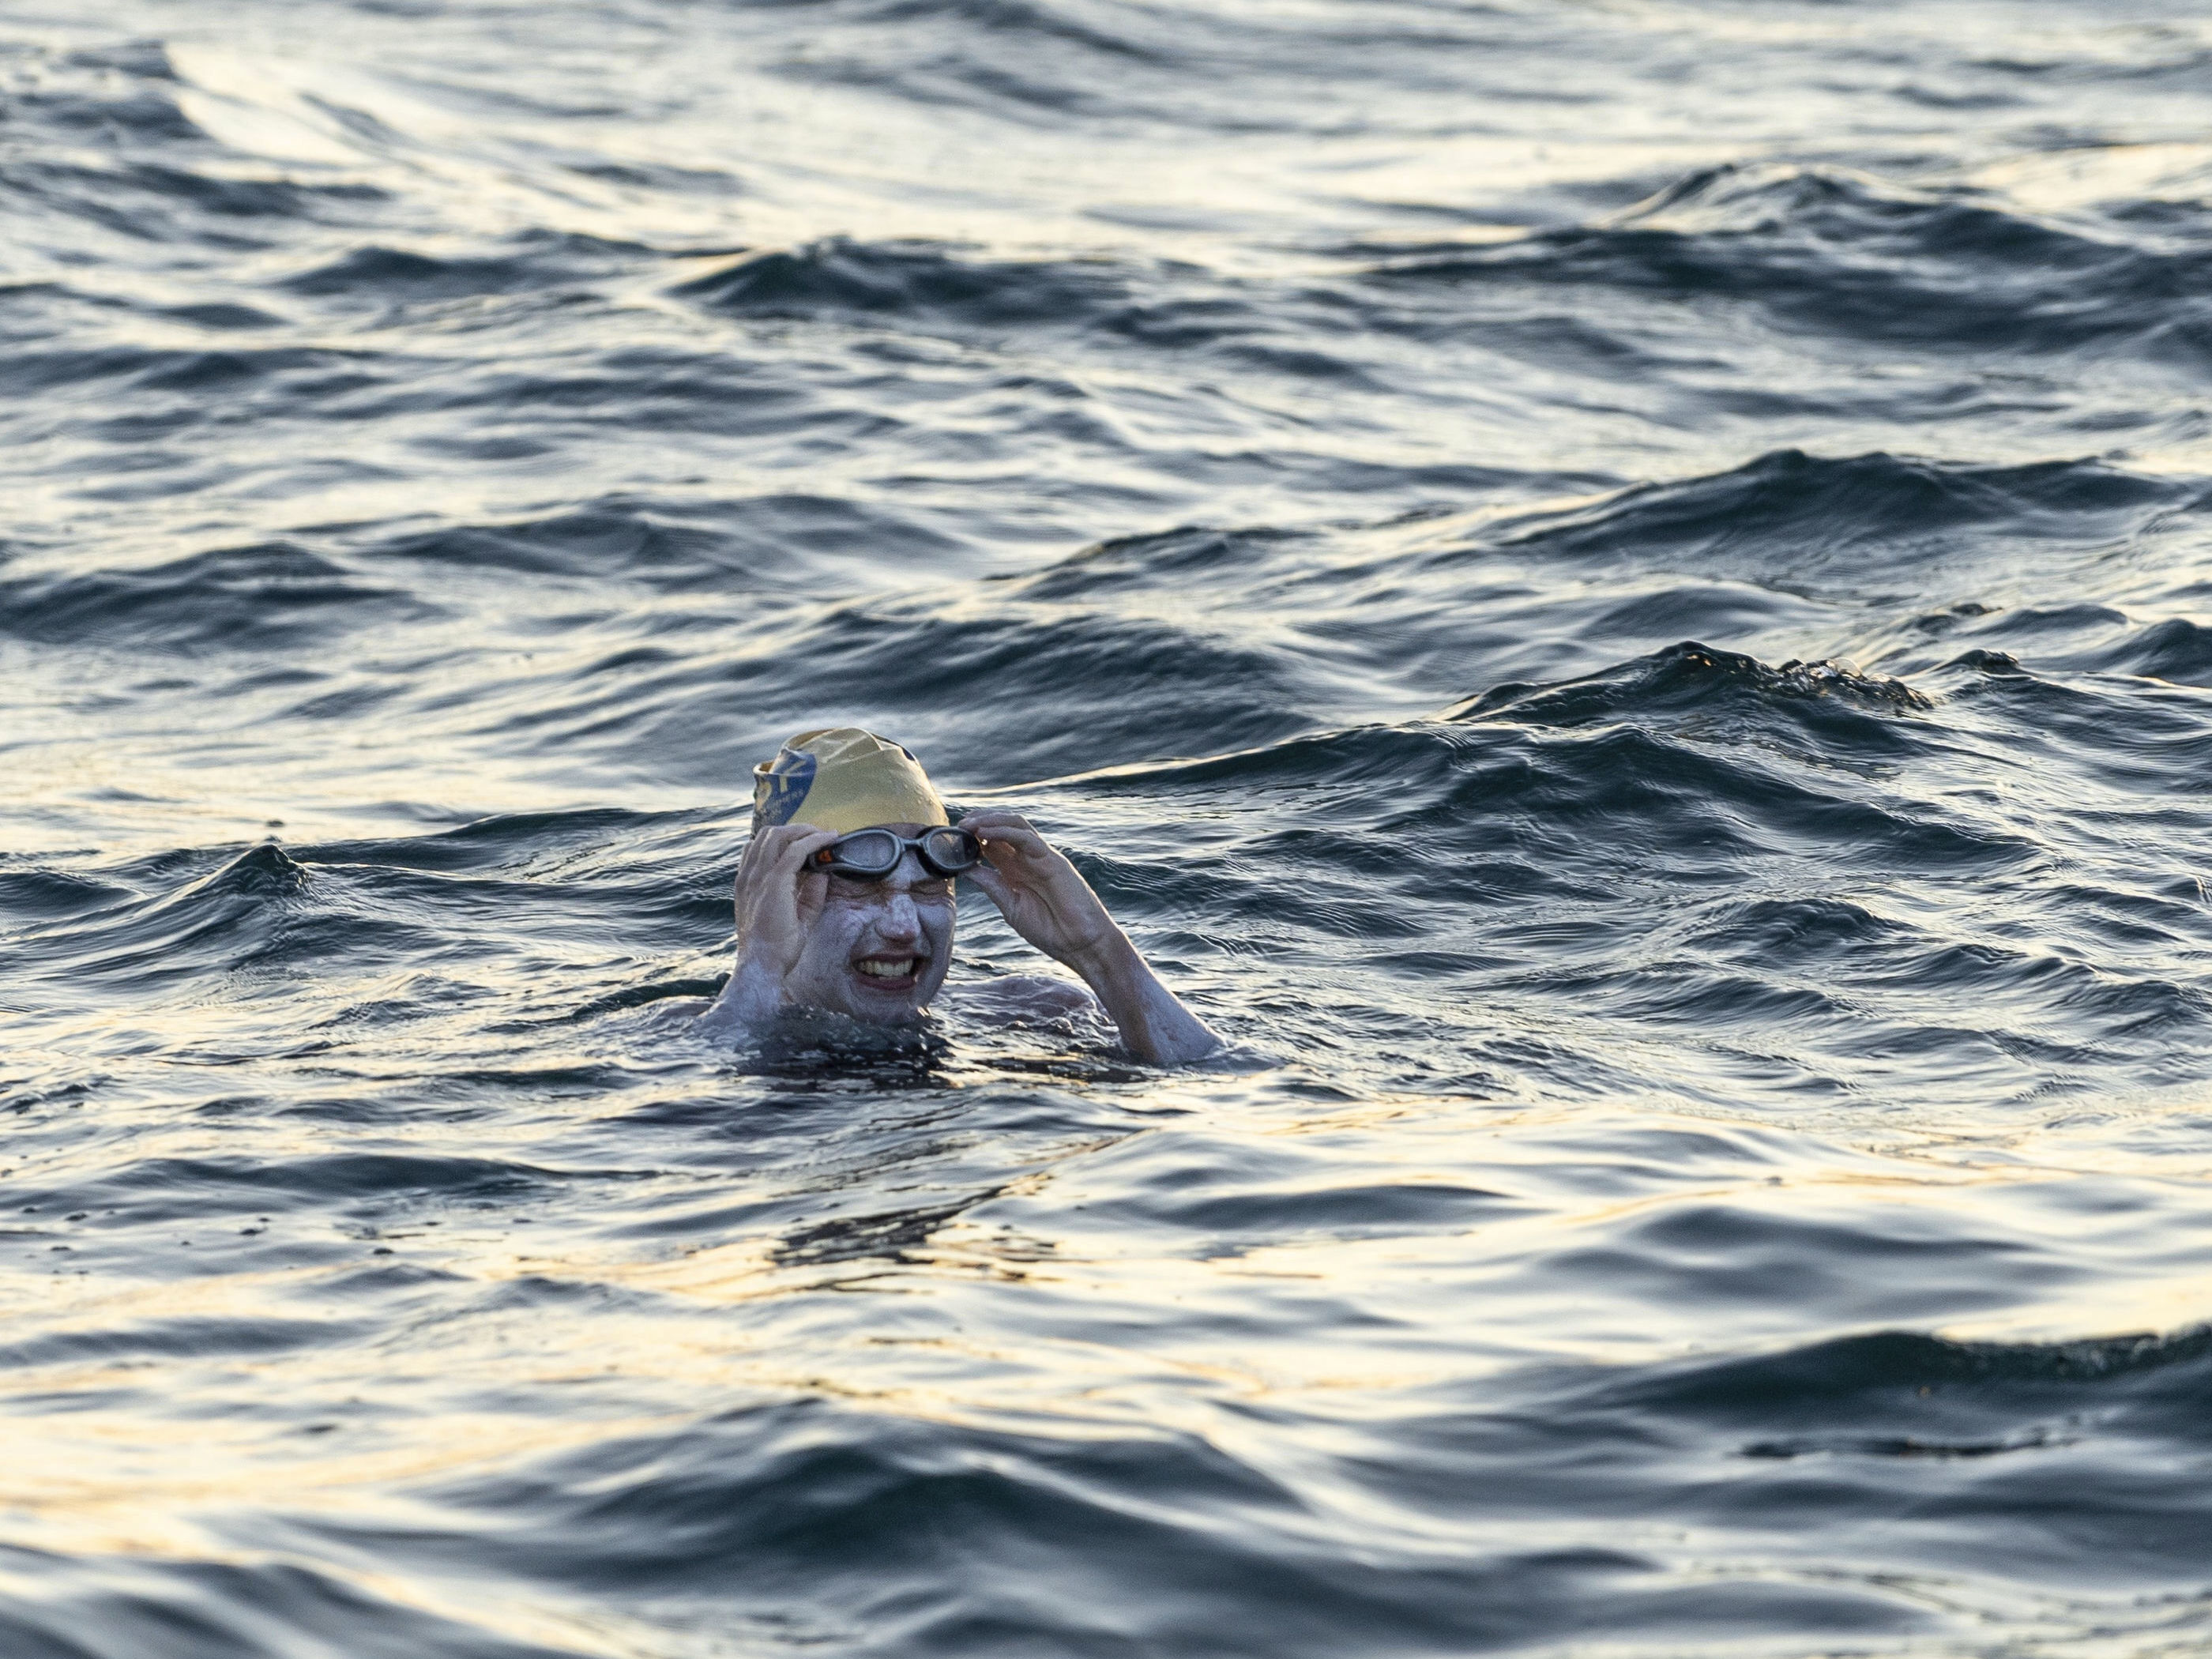 American Cancer Survivor Becomes First to Swim English Channel Four Times